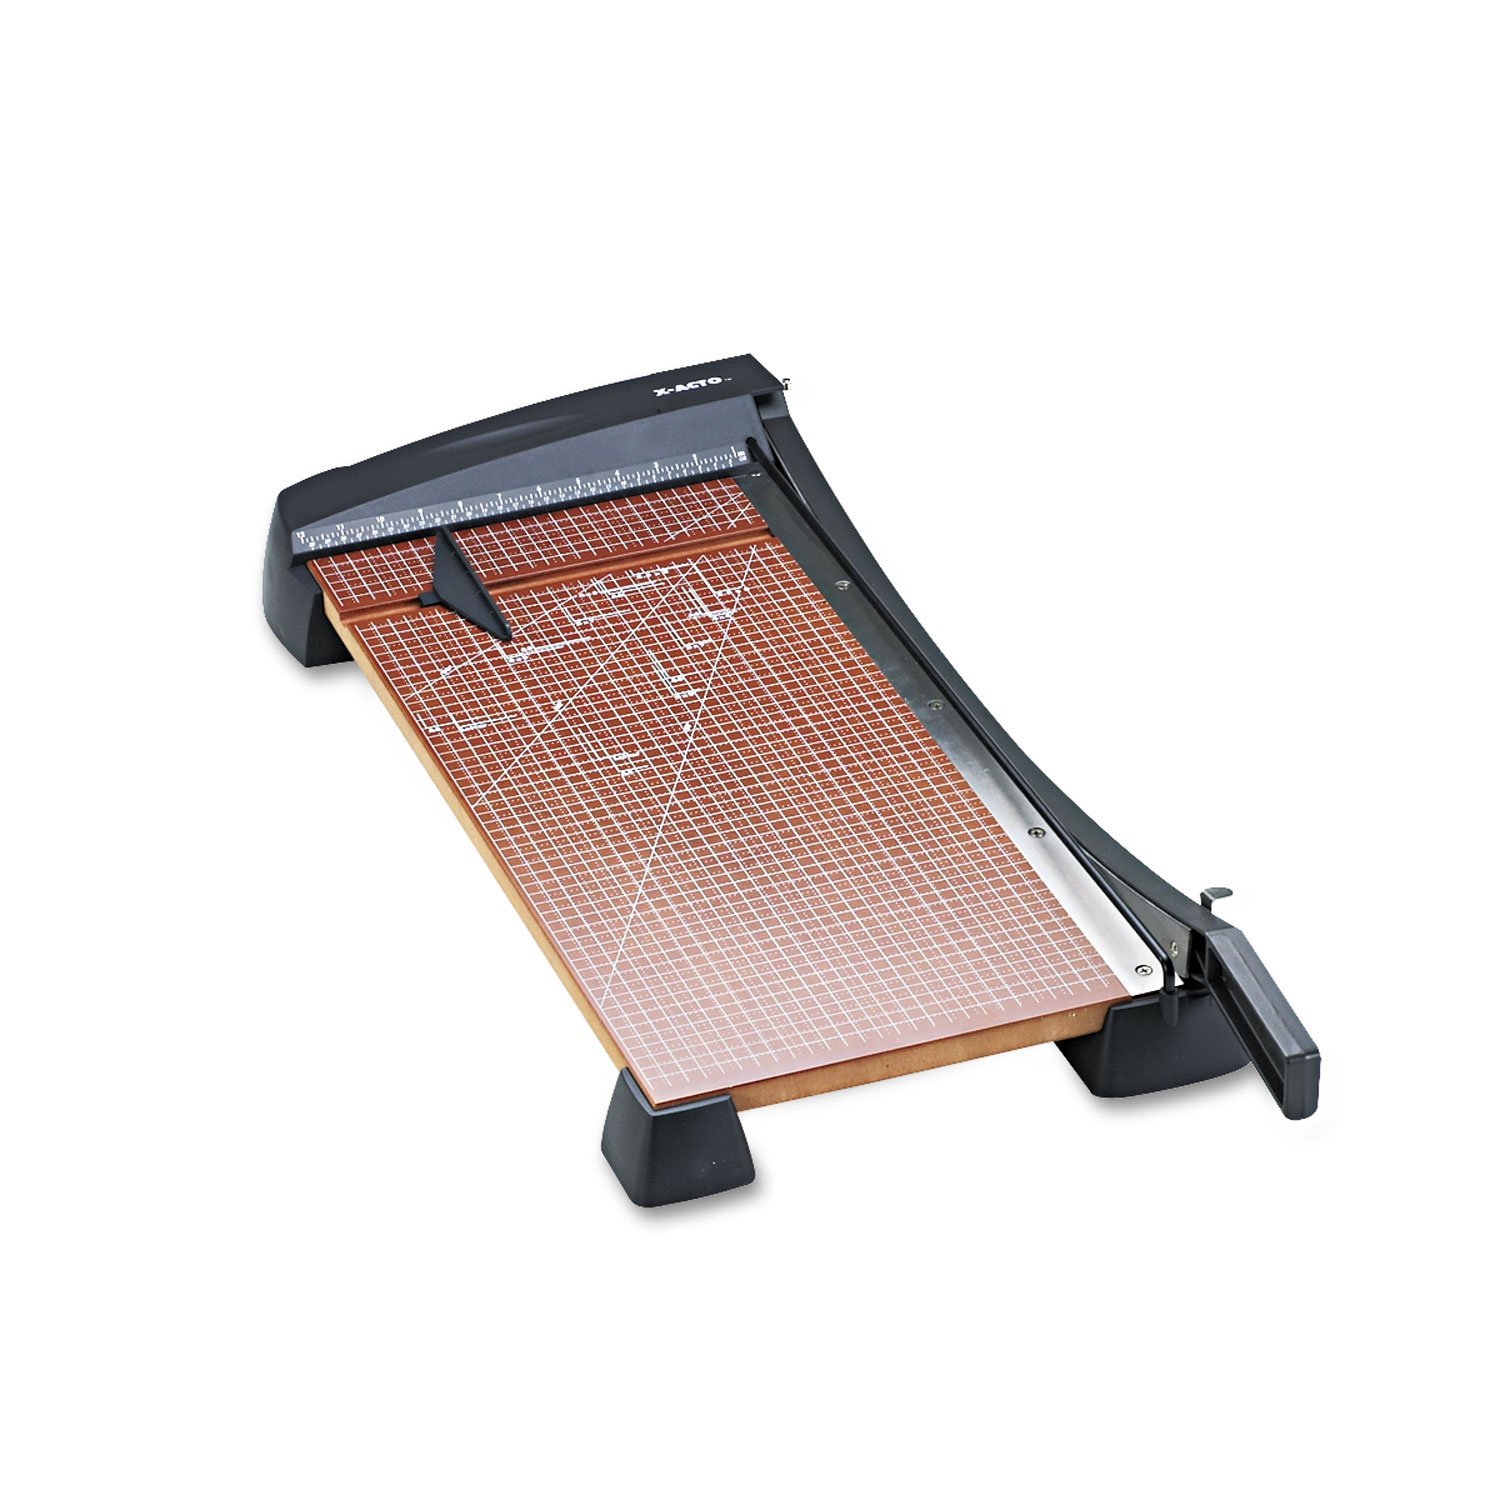 X-ACTO 26364 Heavy-Duty Wood Base Guillotine Trimmer, 15 Sheets, 12-Inch x 24-Inch